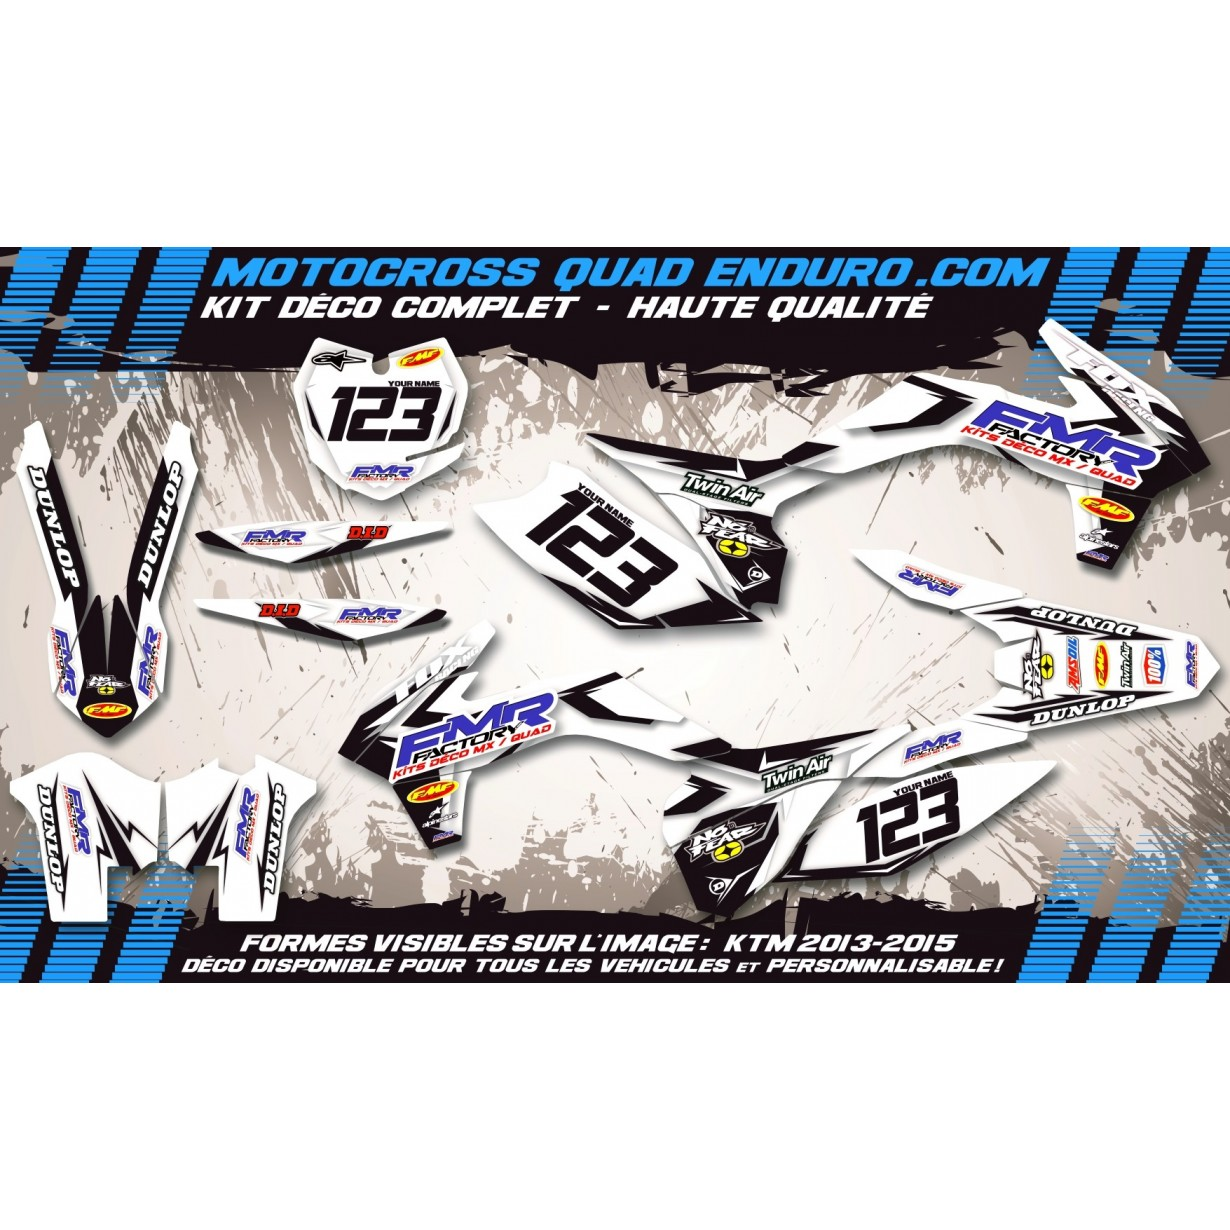 KIT DÉCO Perso 450 KFX 06-12 Quad Fmr factory WT Edition MA13WT